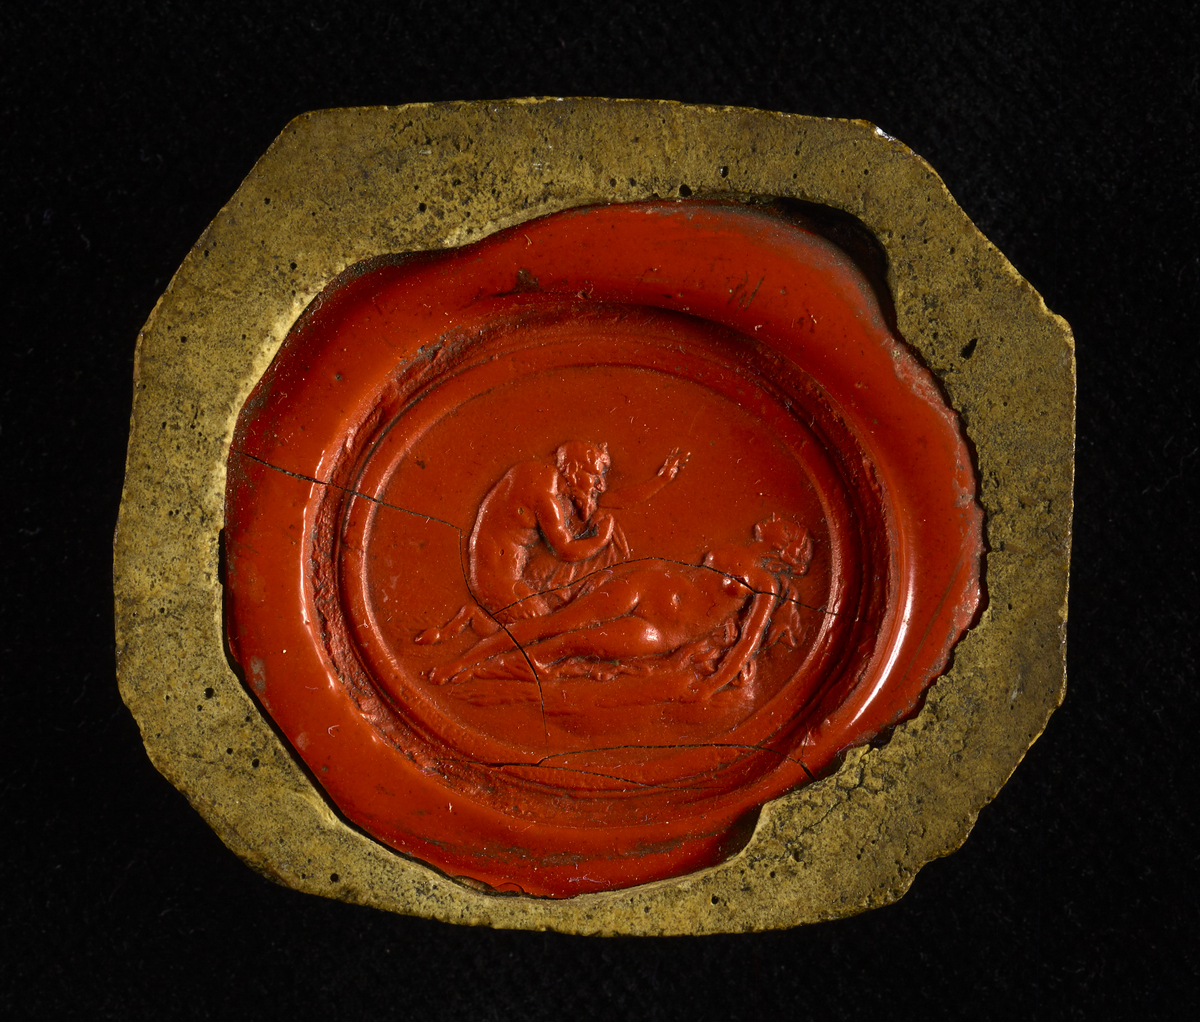 A small red wax seal containing intricate, classical-looking artwork. A nude lady is shown interacting with a bearded man. The man has a tail which suggests this may be a representation of the Devil.